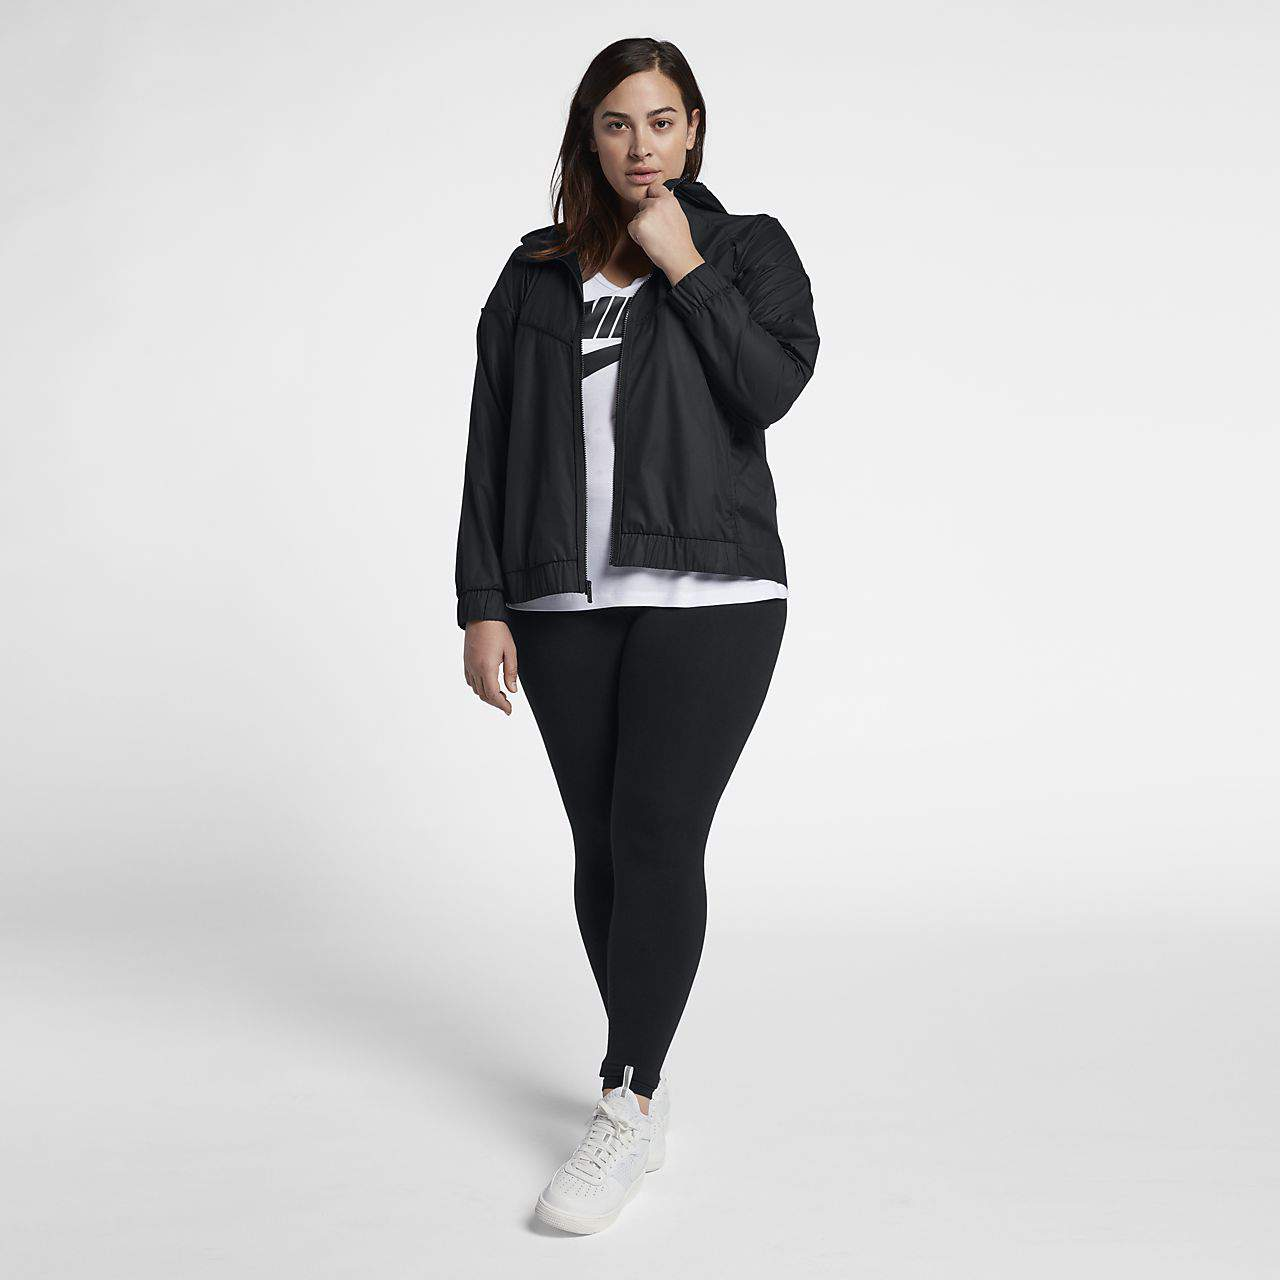 Function & Style: Plus Size Activewear